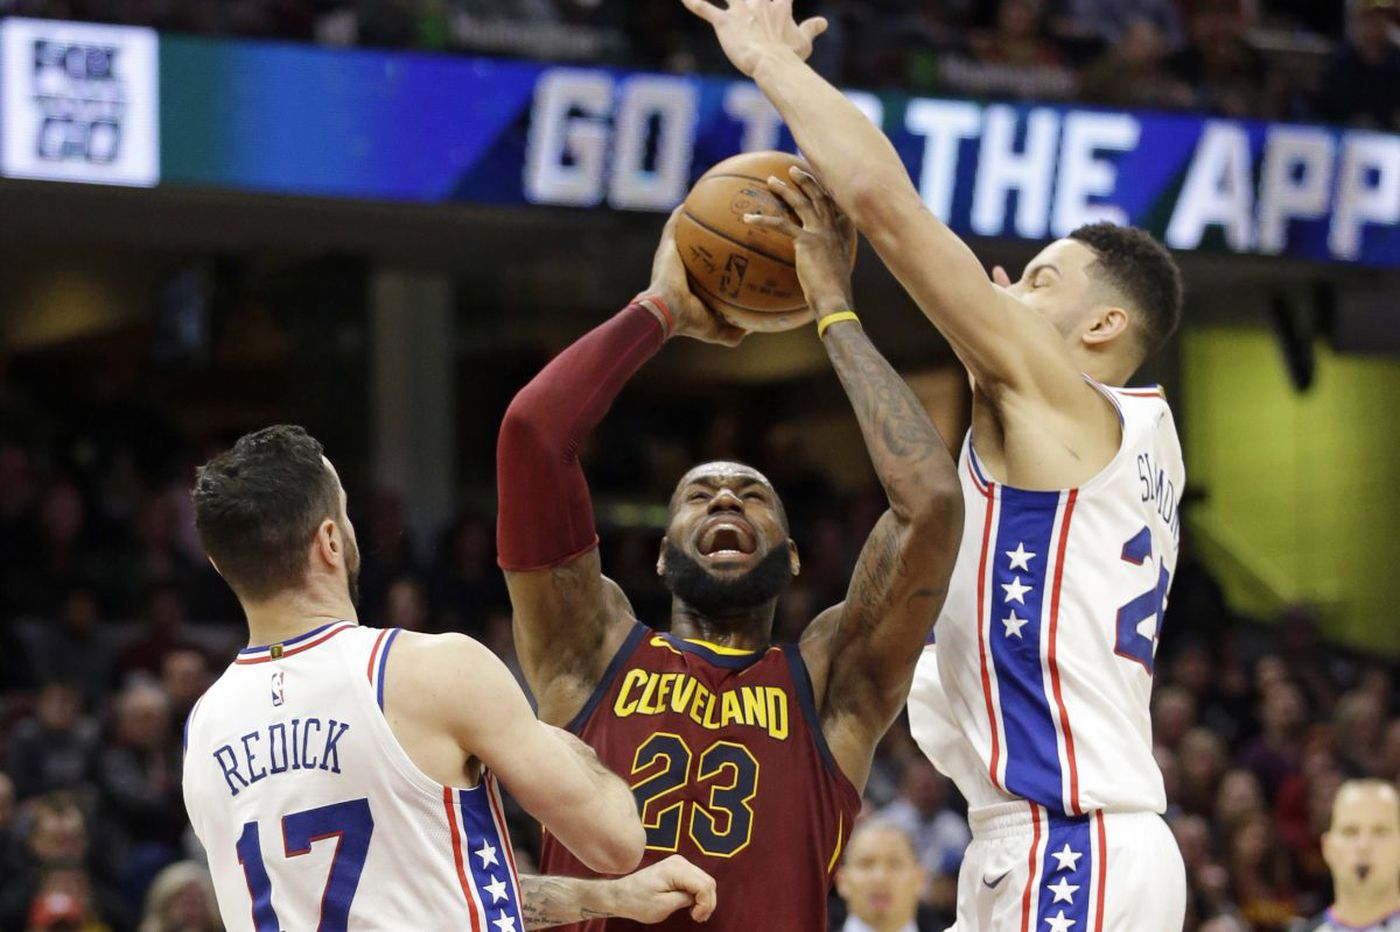 LeBron James records triple-double as Cavaliers defeat short-handed Sixers, 105-98